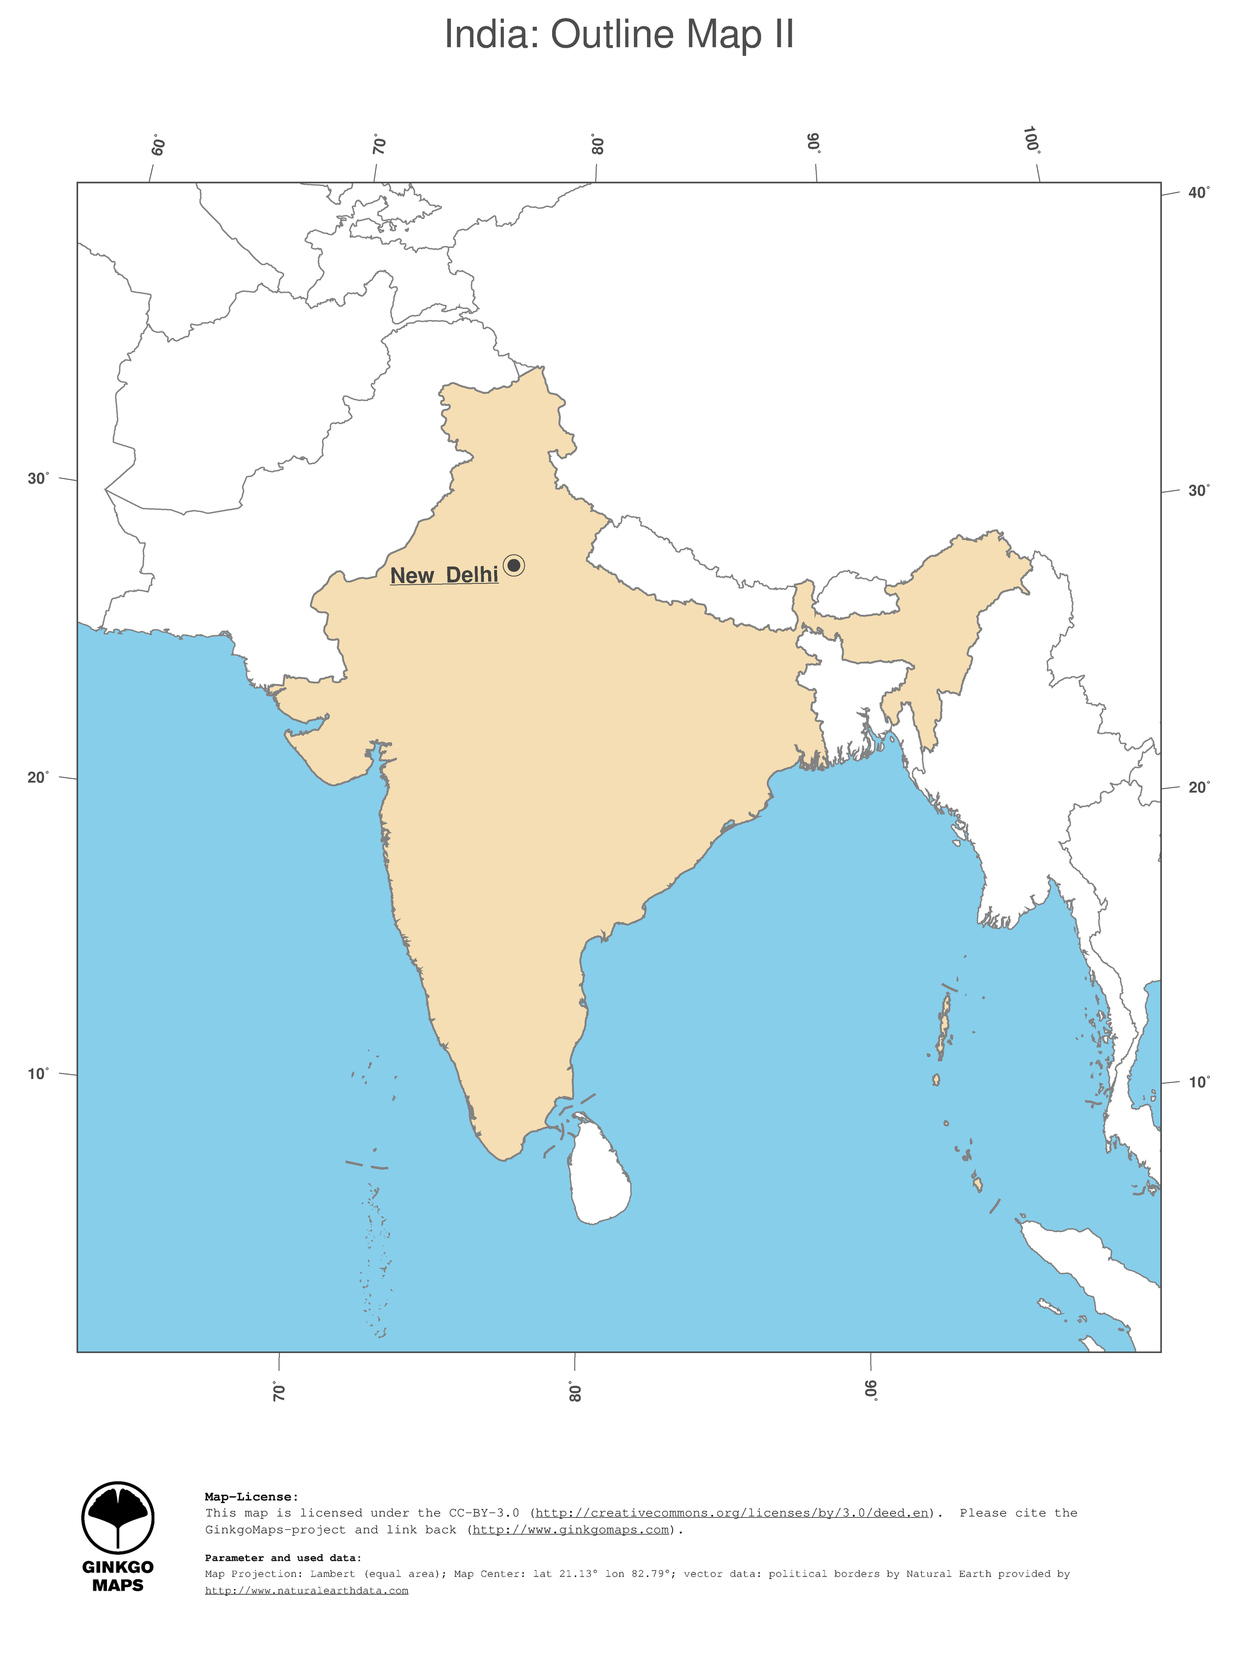 Map india ginkgomaps continent asia region india 2 map india political country borders and capital outline map gumiabroncs Gallery